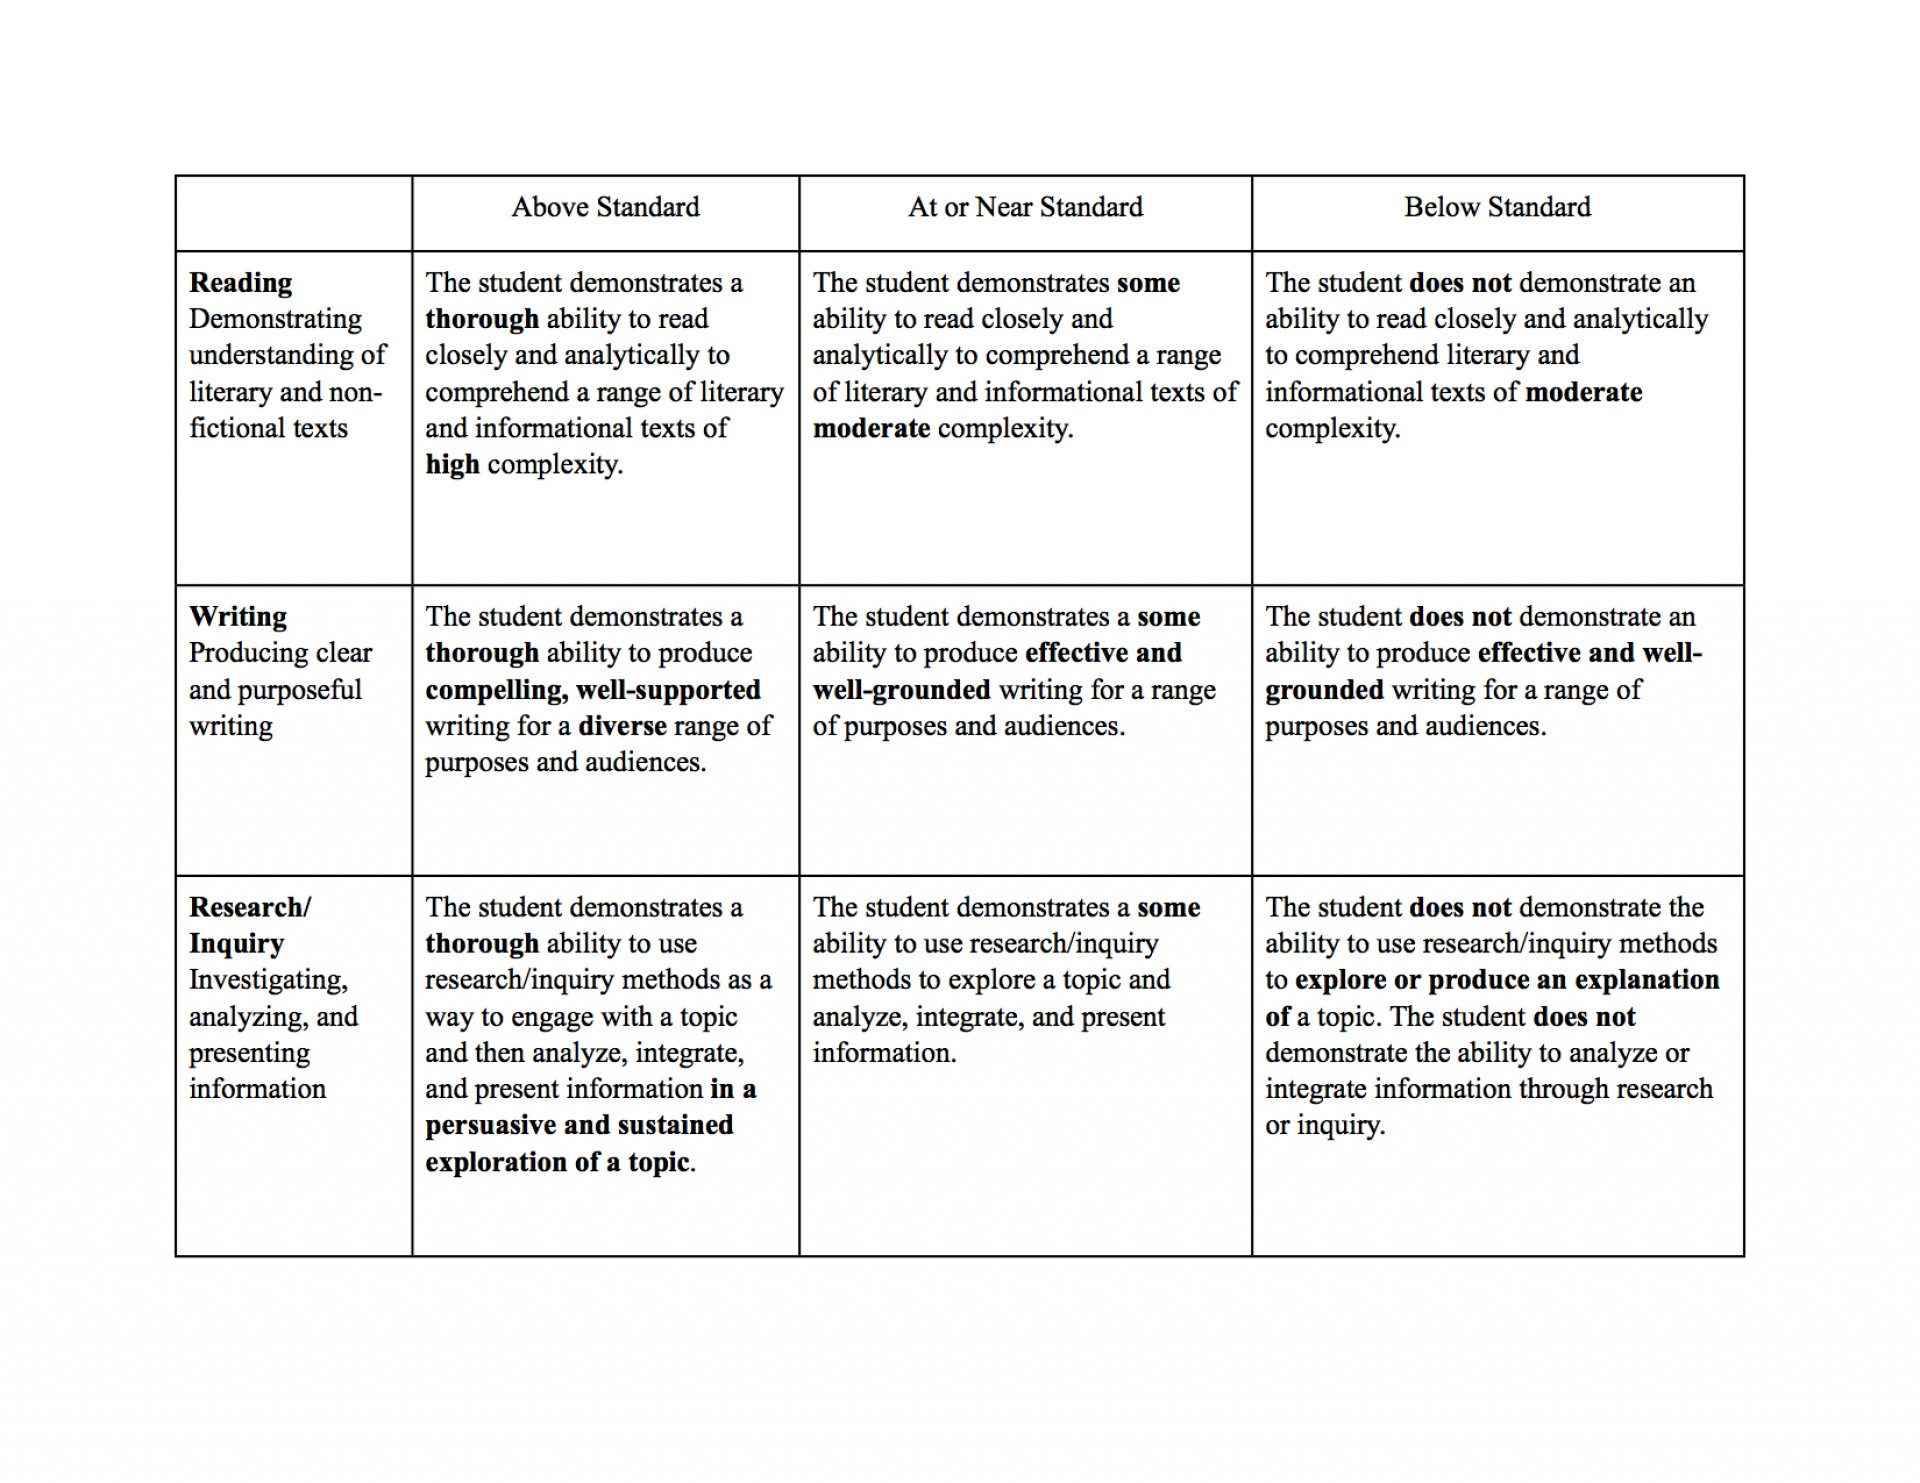 018 Essay Paragraph Starters Rubric For Persuasive 5th Grade Writing Cause Sentence High School Essays L Excellent Spanish Gcse 1920